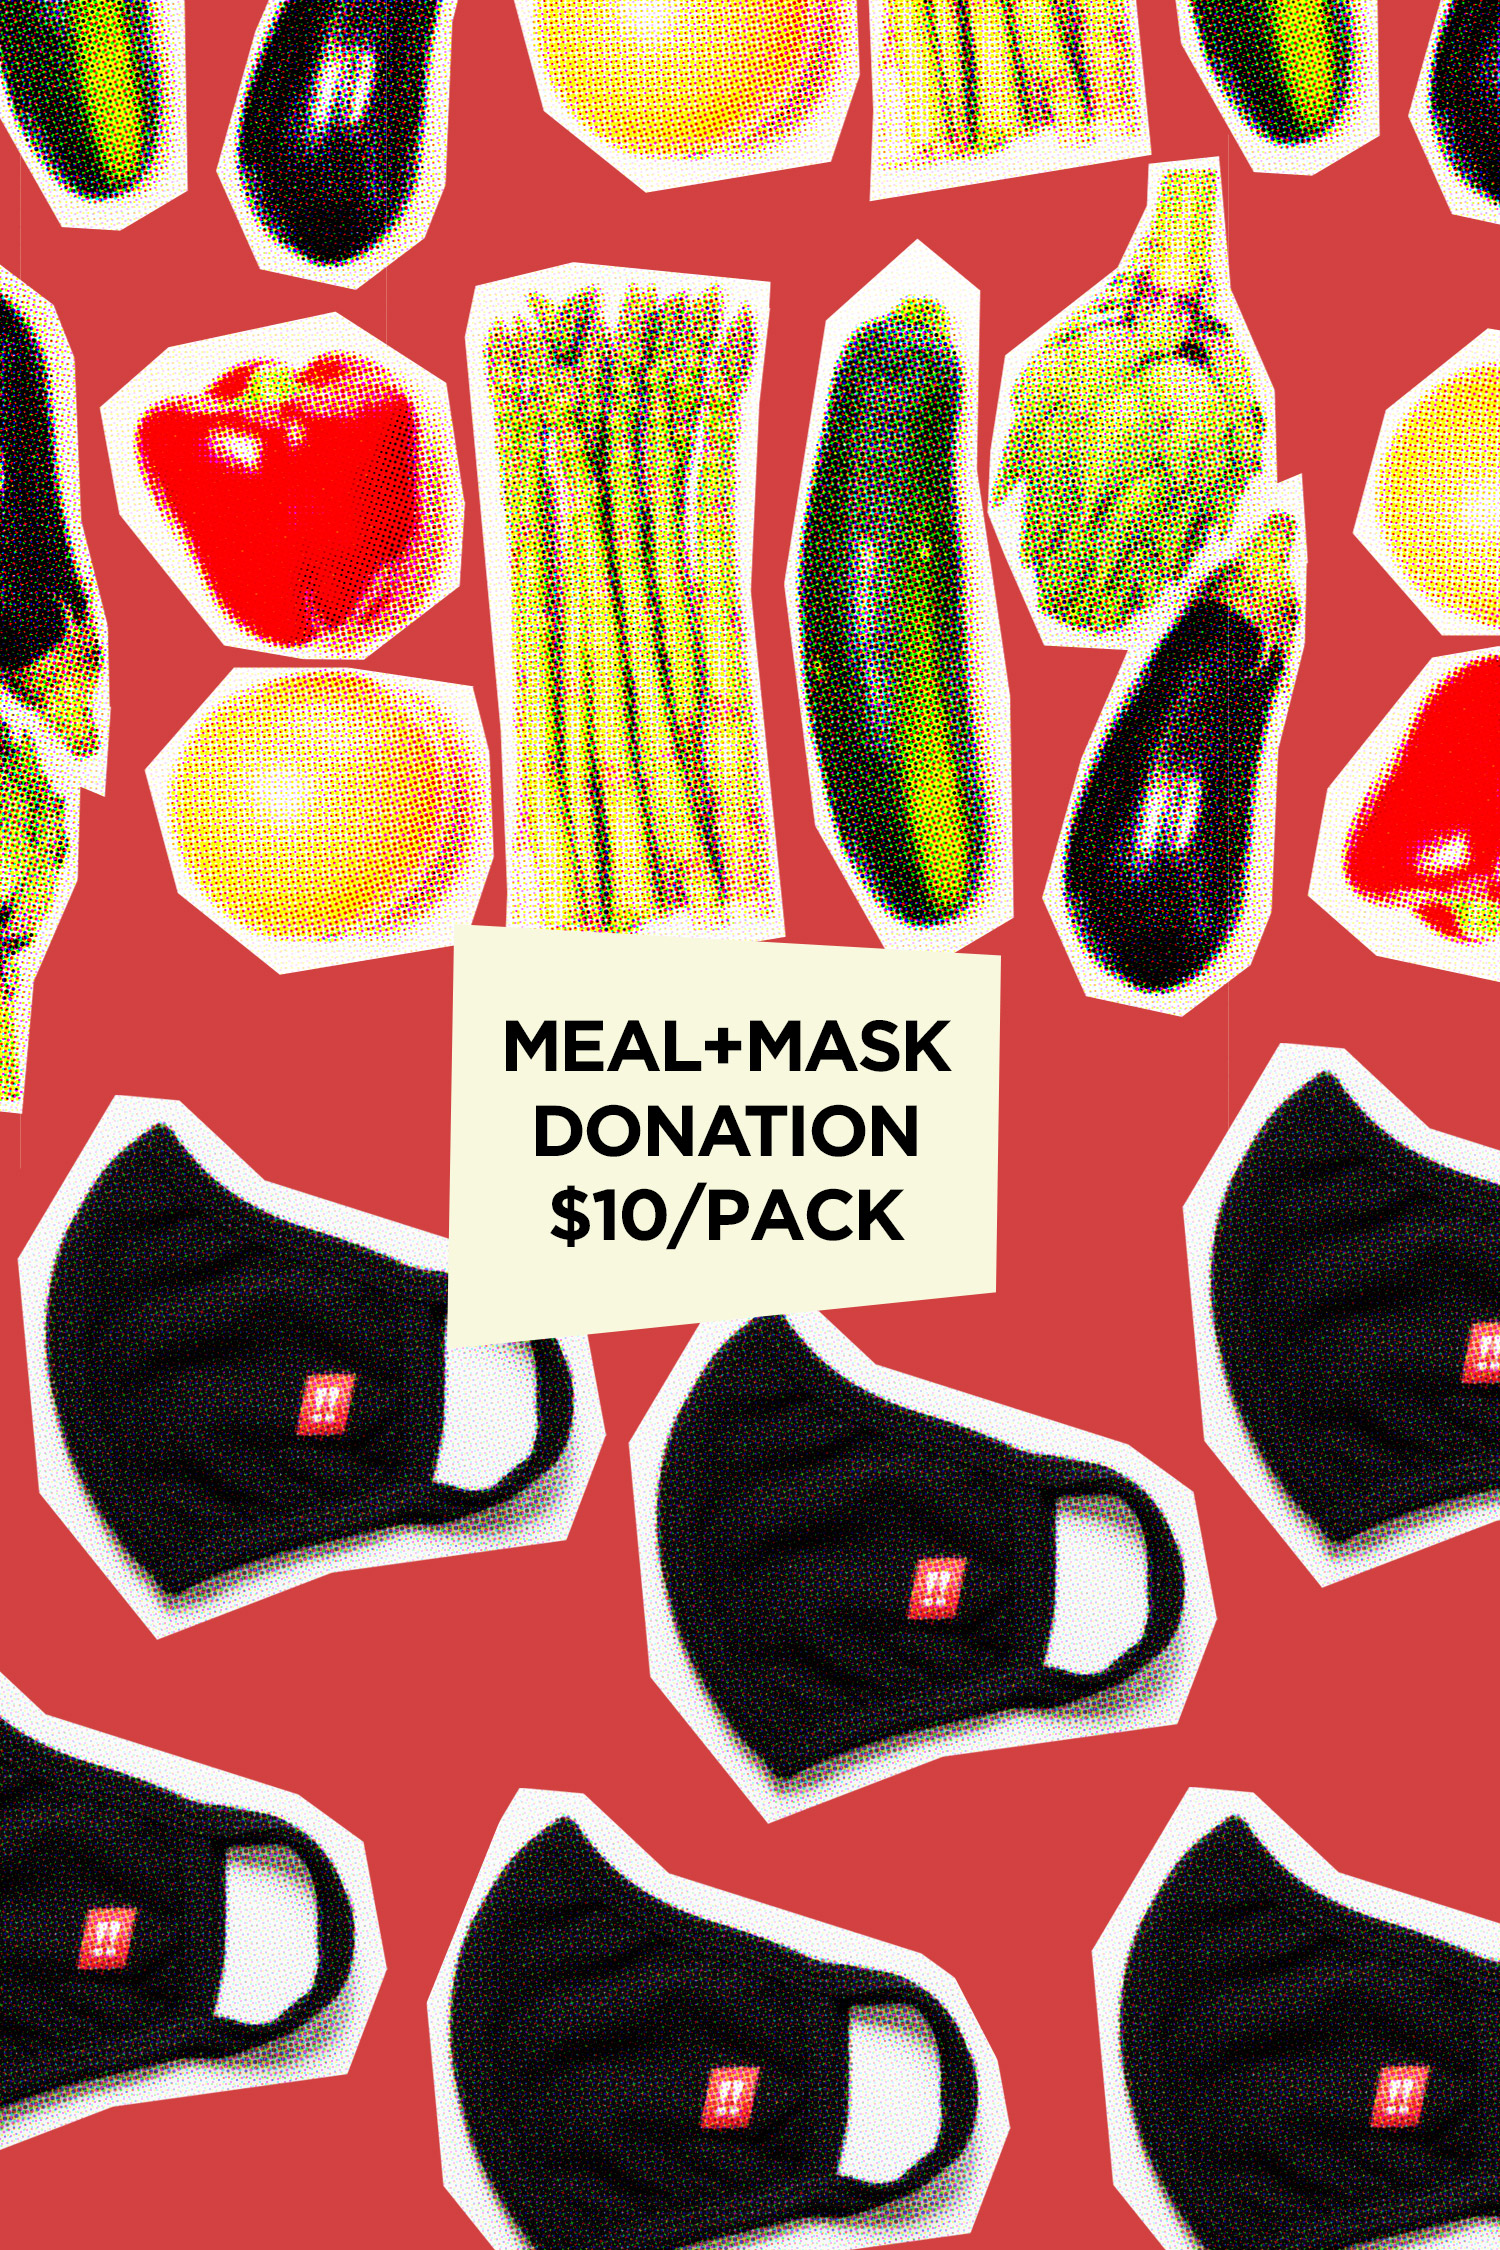 Donate Meals with a Mask!!